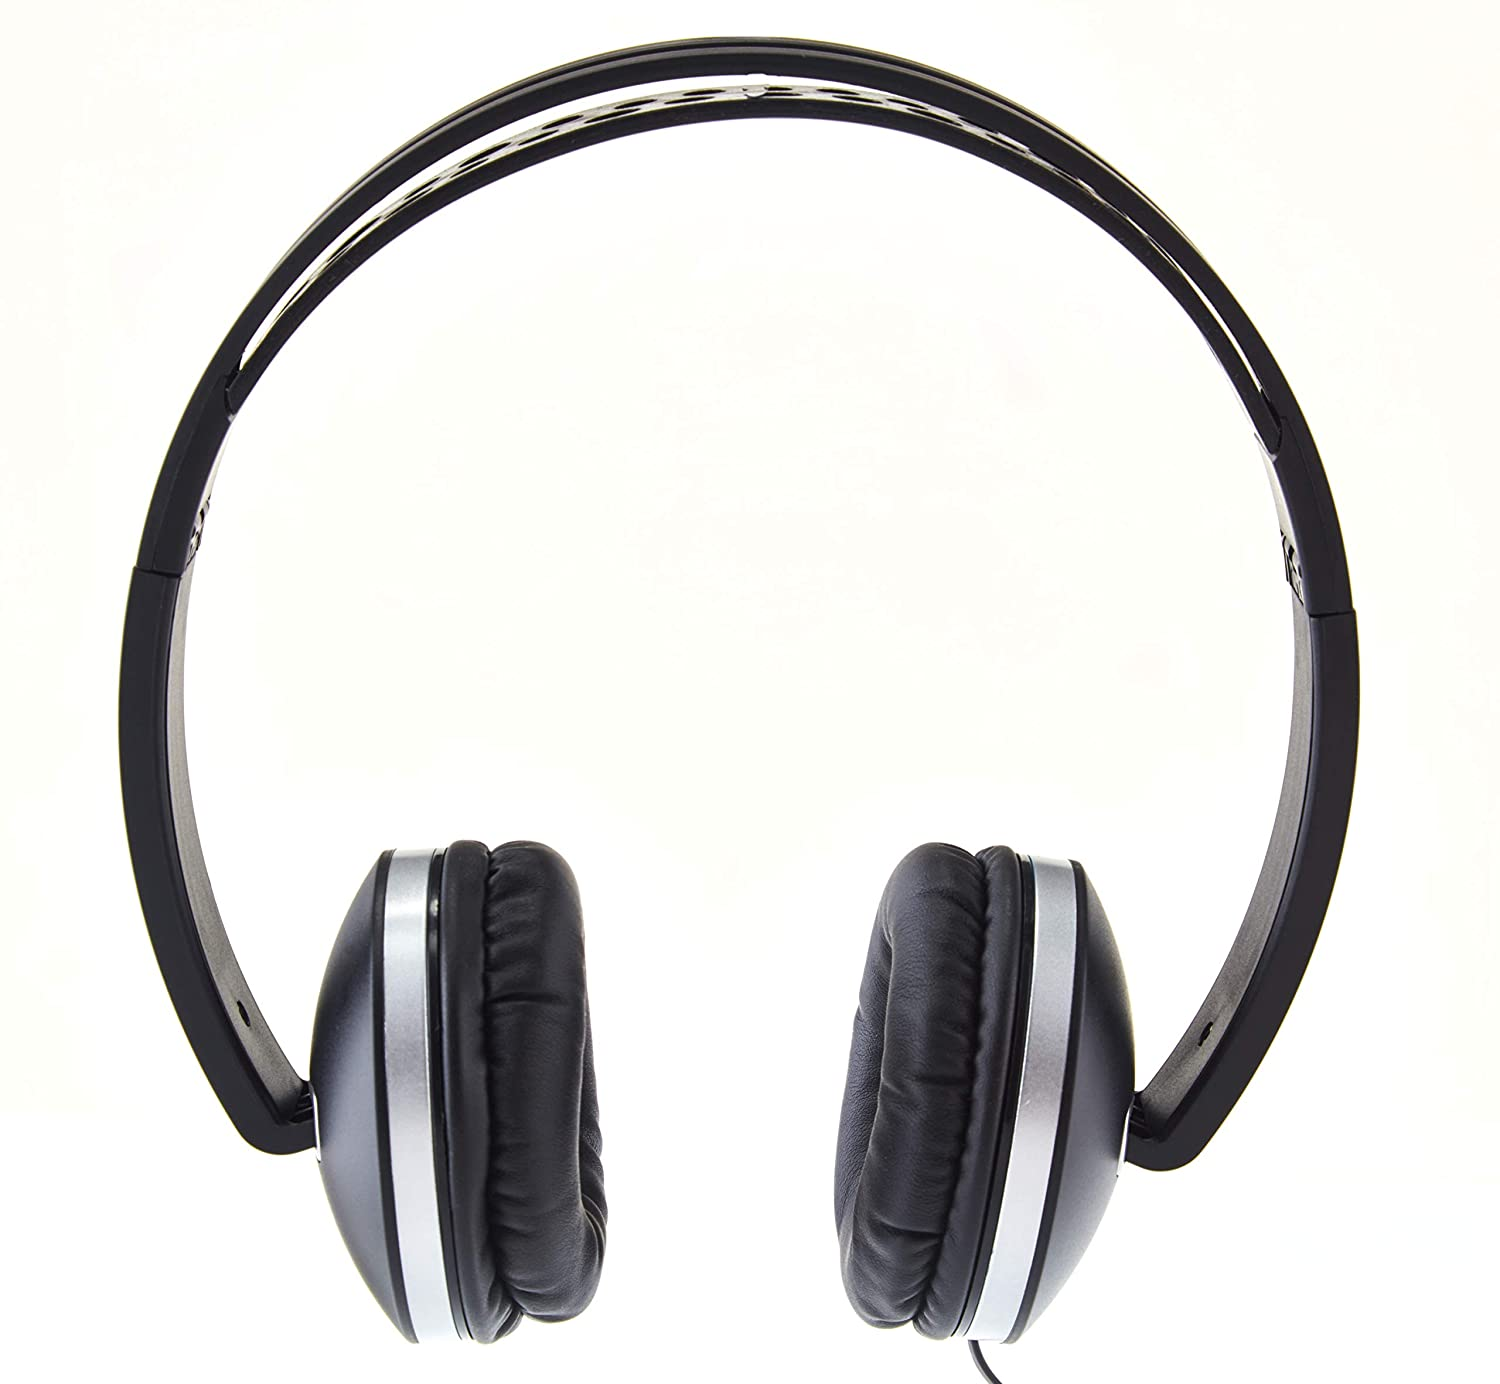 Envent Beatz 500 ET-HPM500 BK Wired Headphones with Mic (Black)